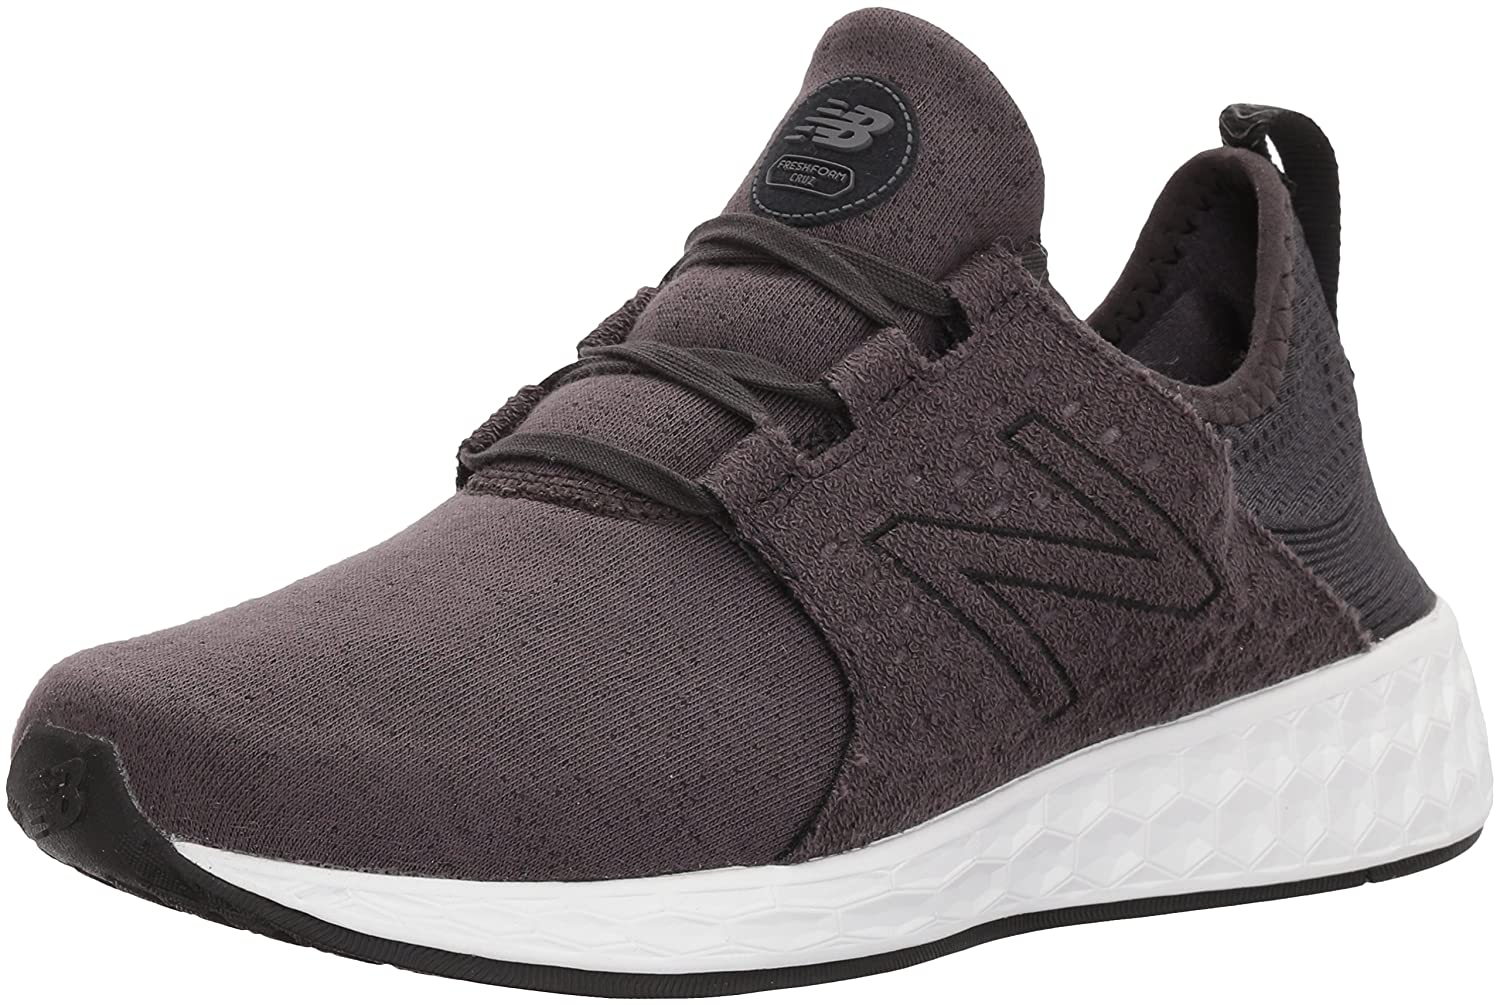 New Balance Women's Fresh Foam Cruz V1 Retro Hoodie Running Shoe B06XSCC79J 10.5 B(M) US|Black/Phantom